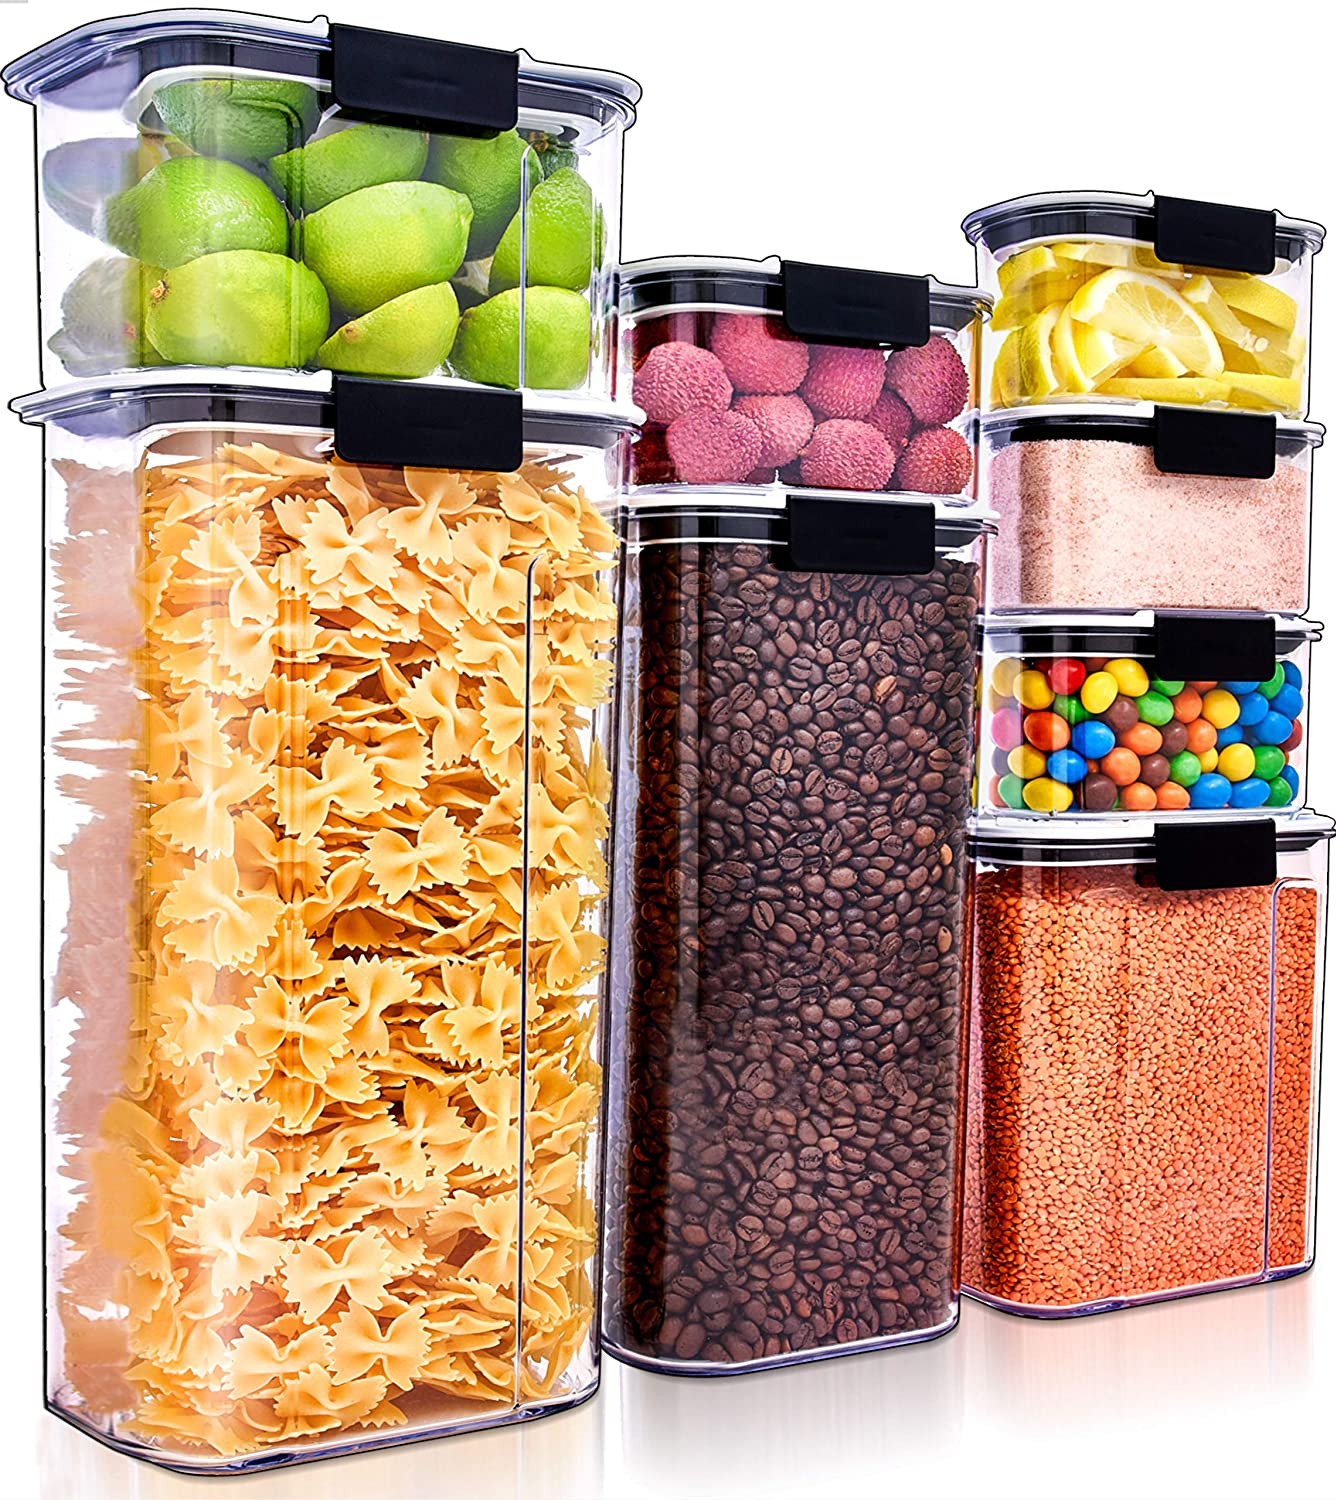 Large Airtight Food Storage Containers ( Set of 8 ) Air Tight Containers for Food Flour Container Flour Storage Containers for Pantry Storage Containers Airtight Containers for Food Pantry Containers